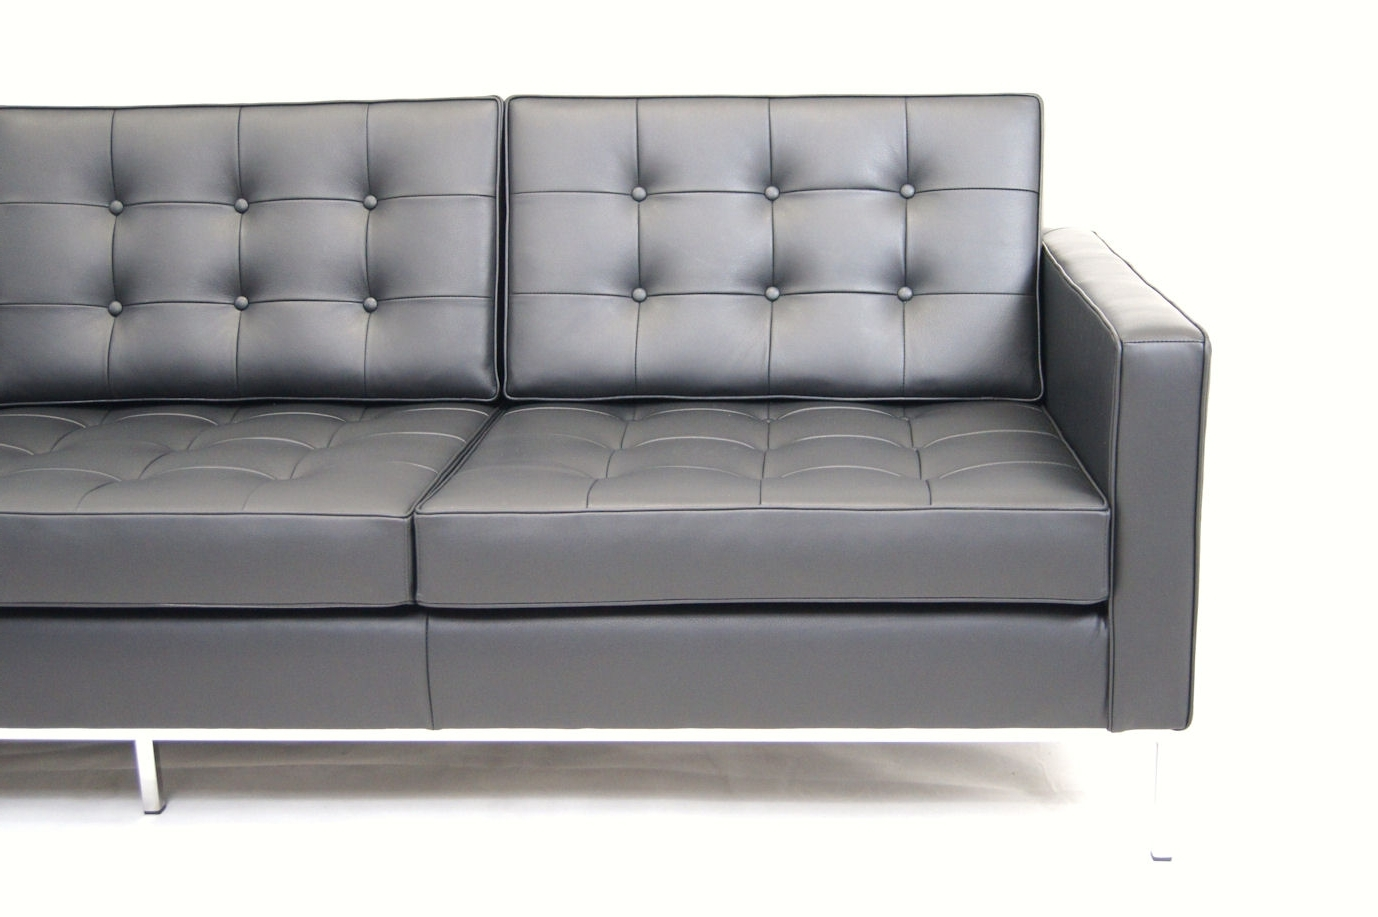 Well Liked Florence Knoll Sofa Canada « House Plans Ideas Throughout Florence Knoll Leather Sofas (View 19 of 20)